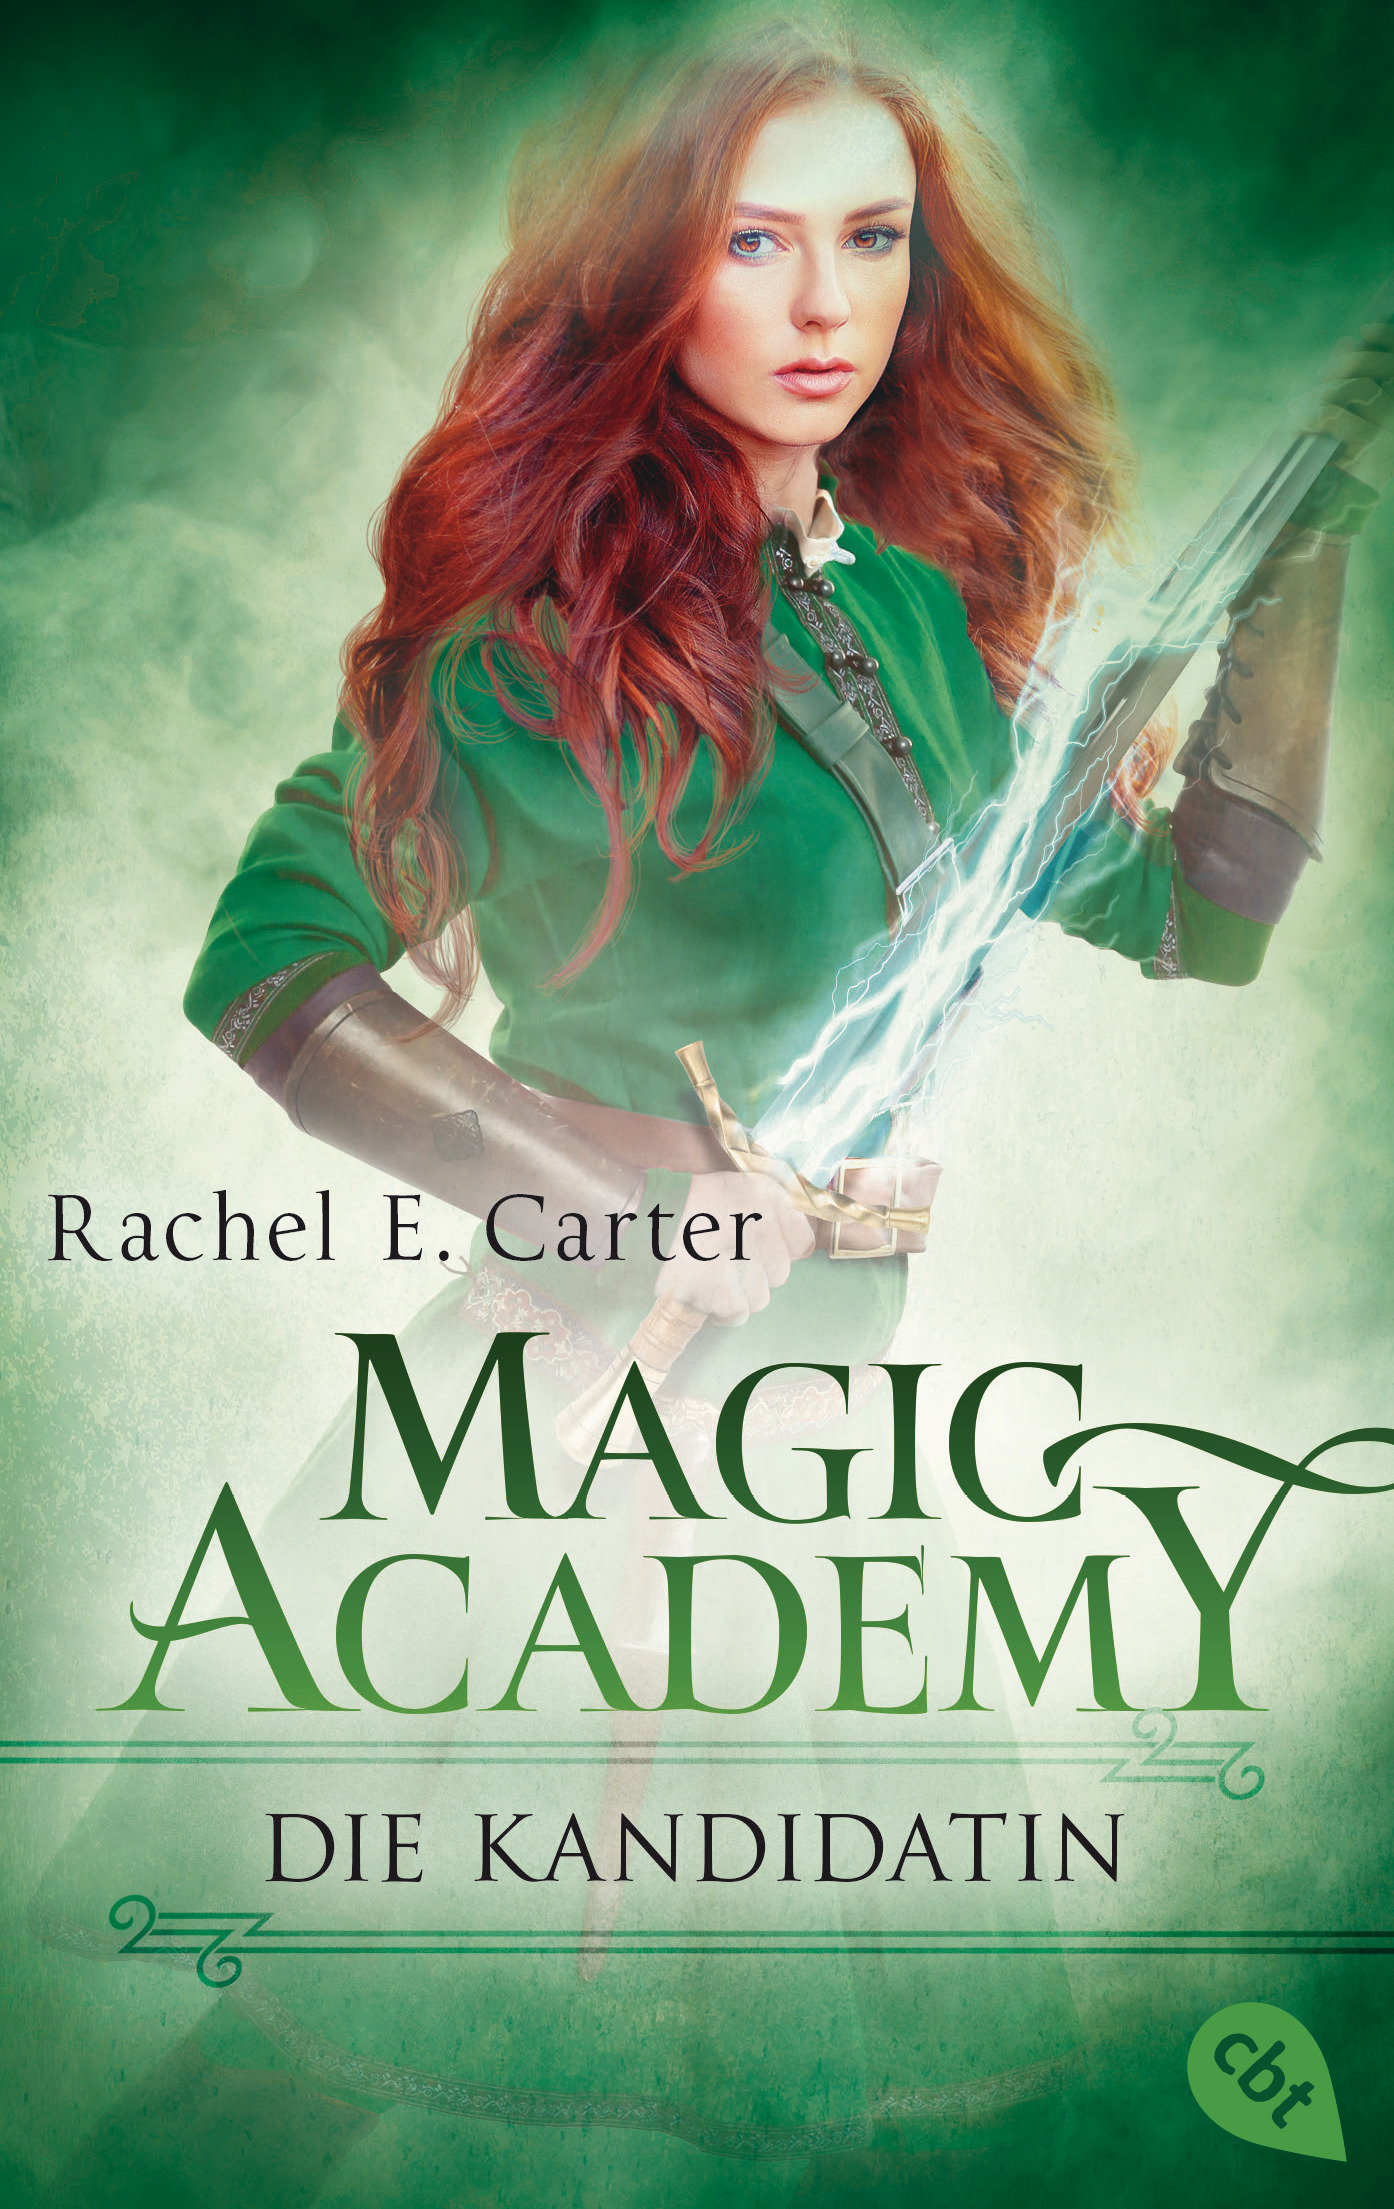 https://www.randomhouse.de/Taschenbuch/Magic-Academy-Die-Kandidatin/Rachel-E-Carter/cbj-Jugendbuecher/e536131.rhd